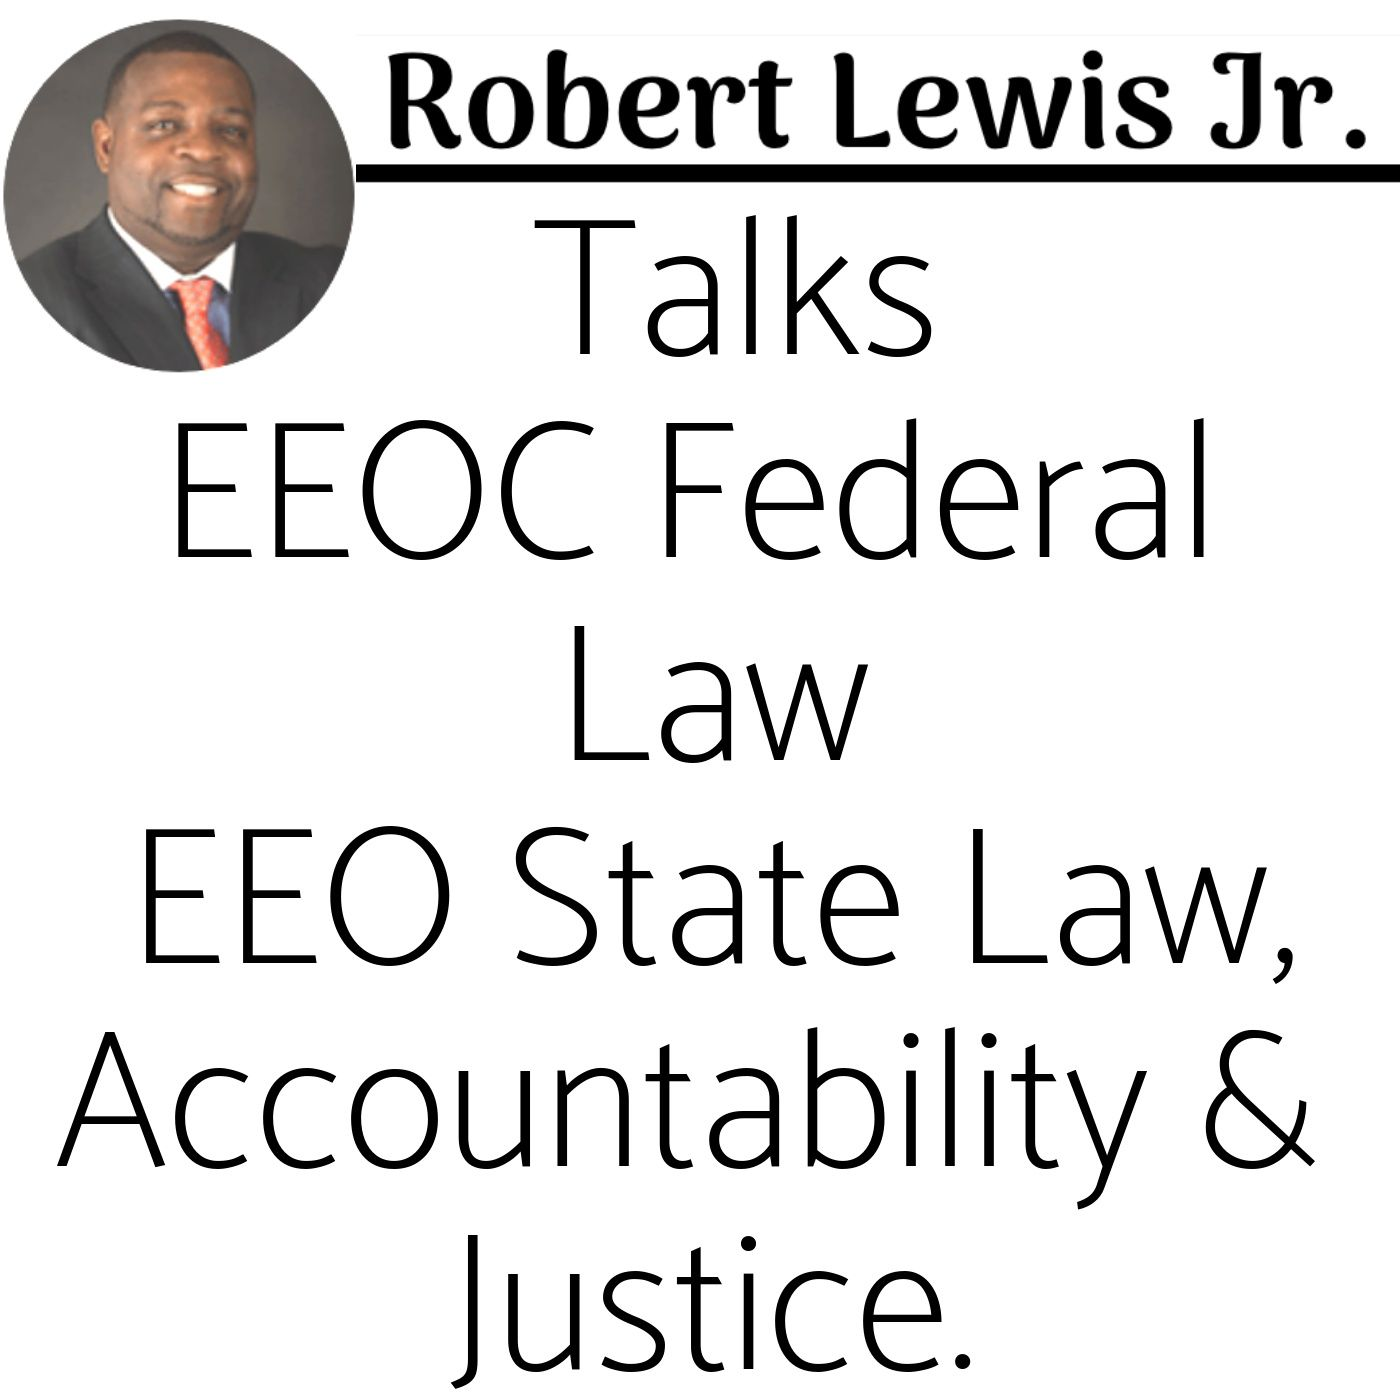 Episode 59: Part 2 of 3 - Robert Lewis Jr. Talks EEOC Federal Law, EEO State Law, Accountability & Justice.